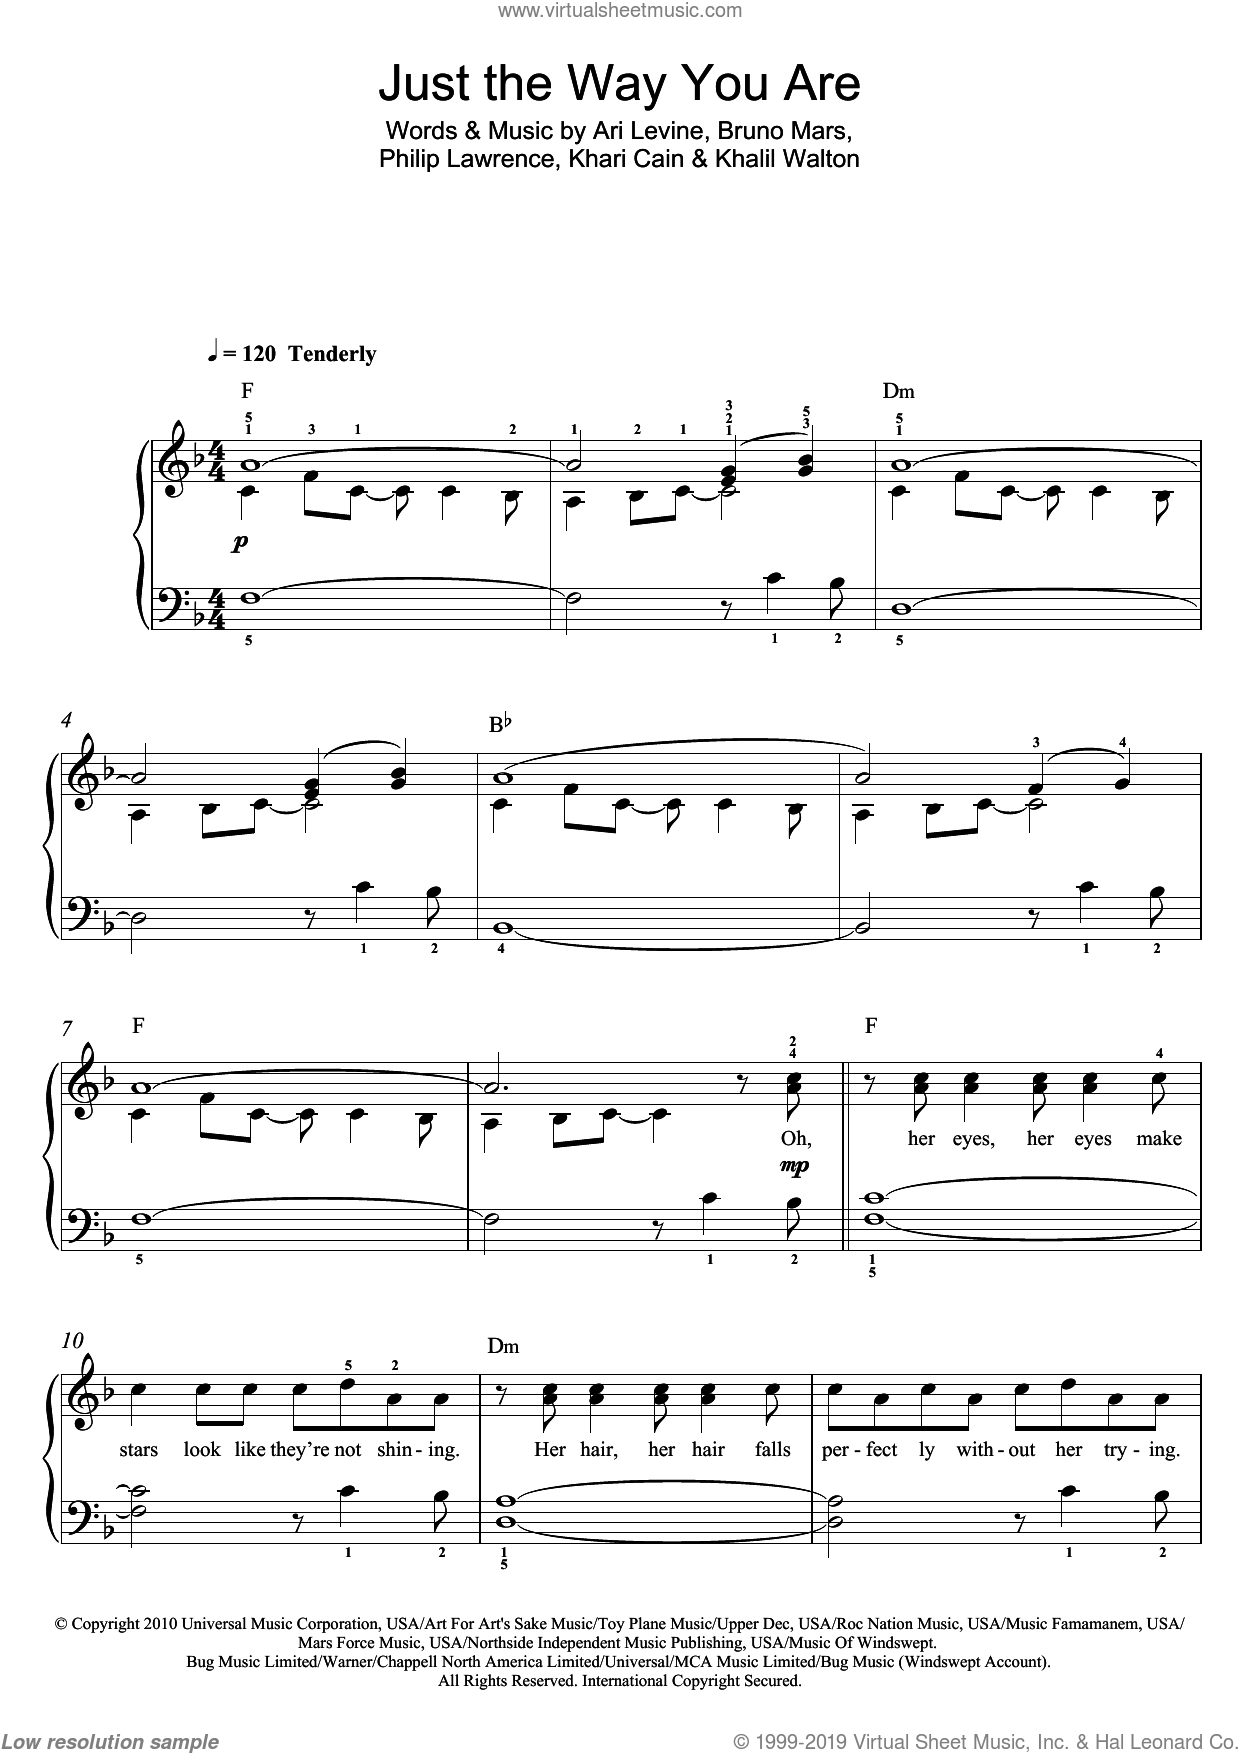 Just The Way You Are sheet music for piano solo (beginners) by Bruno Mars, Ari Levine, Khalil Walton, Khari Cain and Philip Lawrence, beginner piano (beginners)